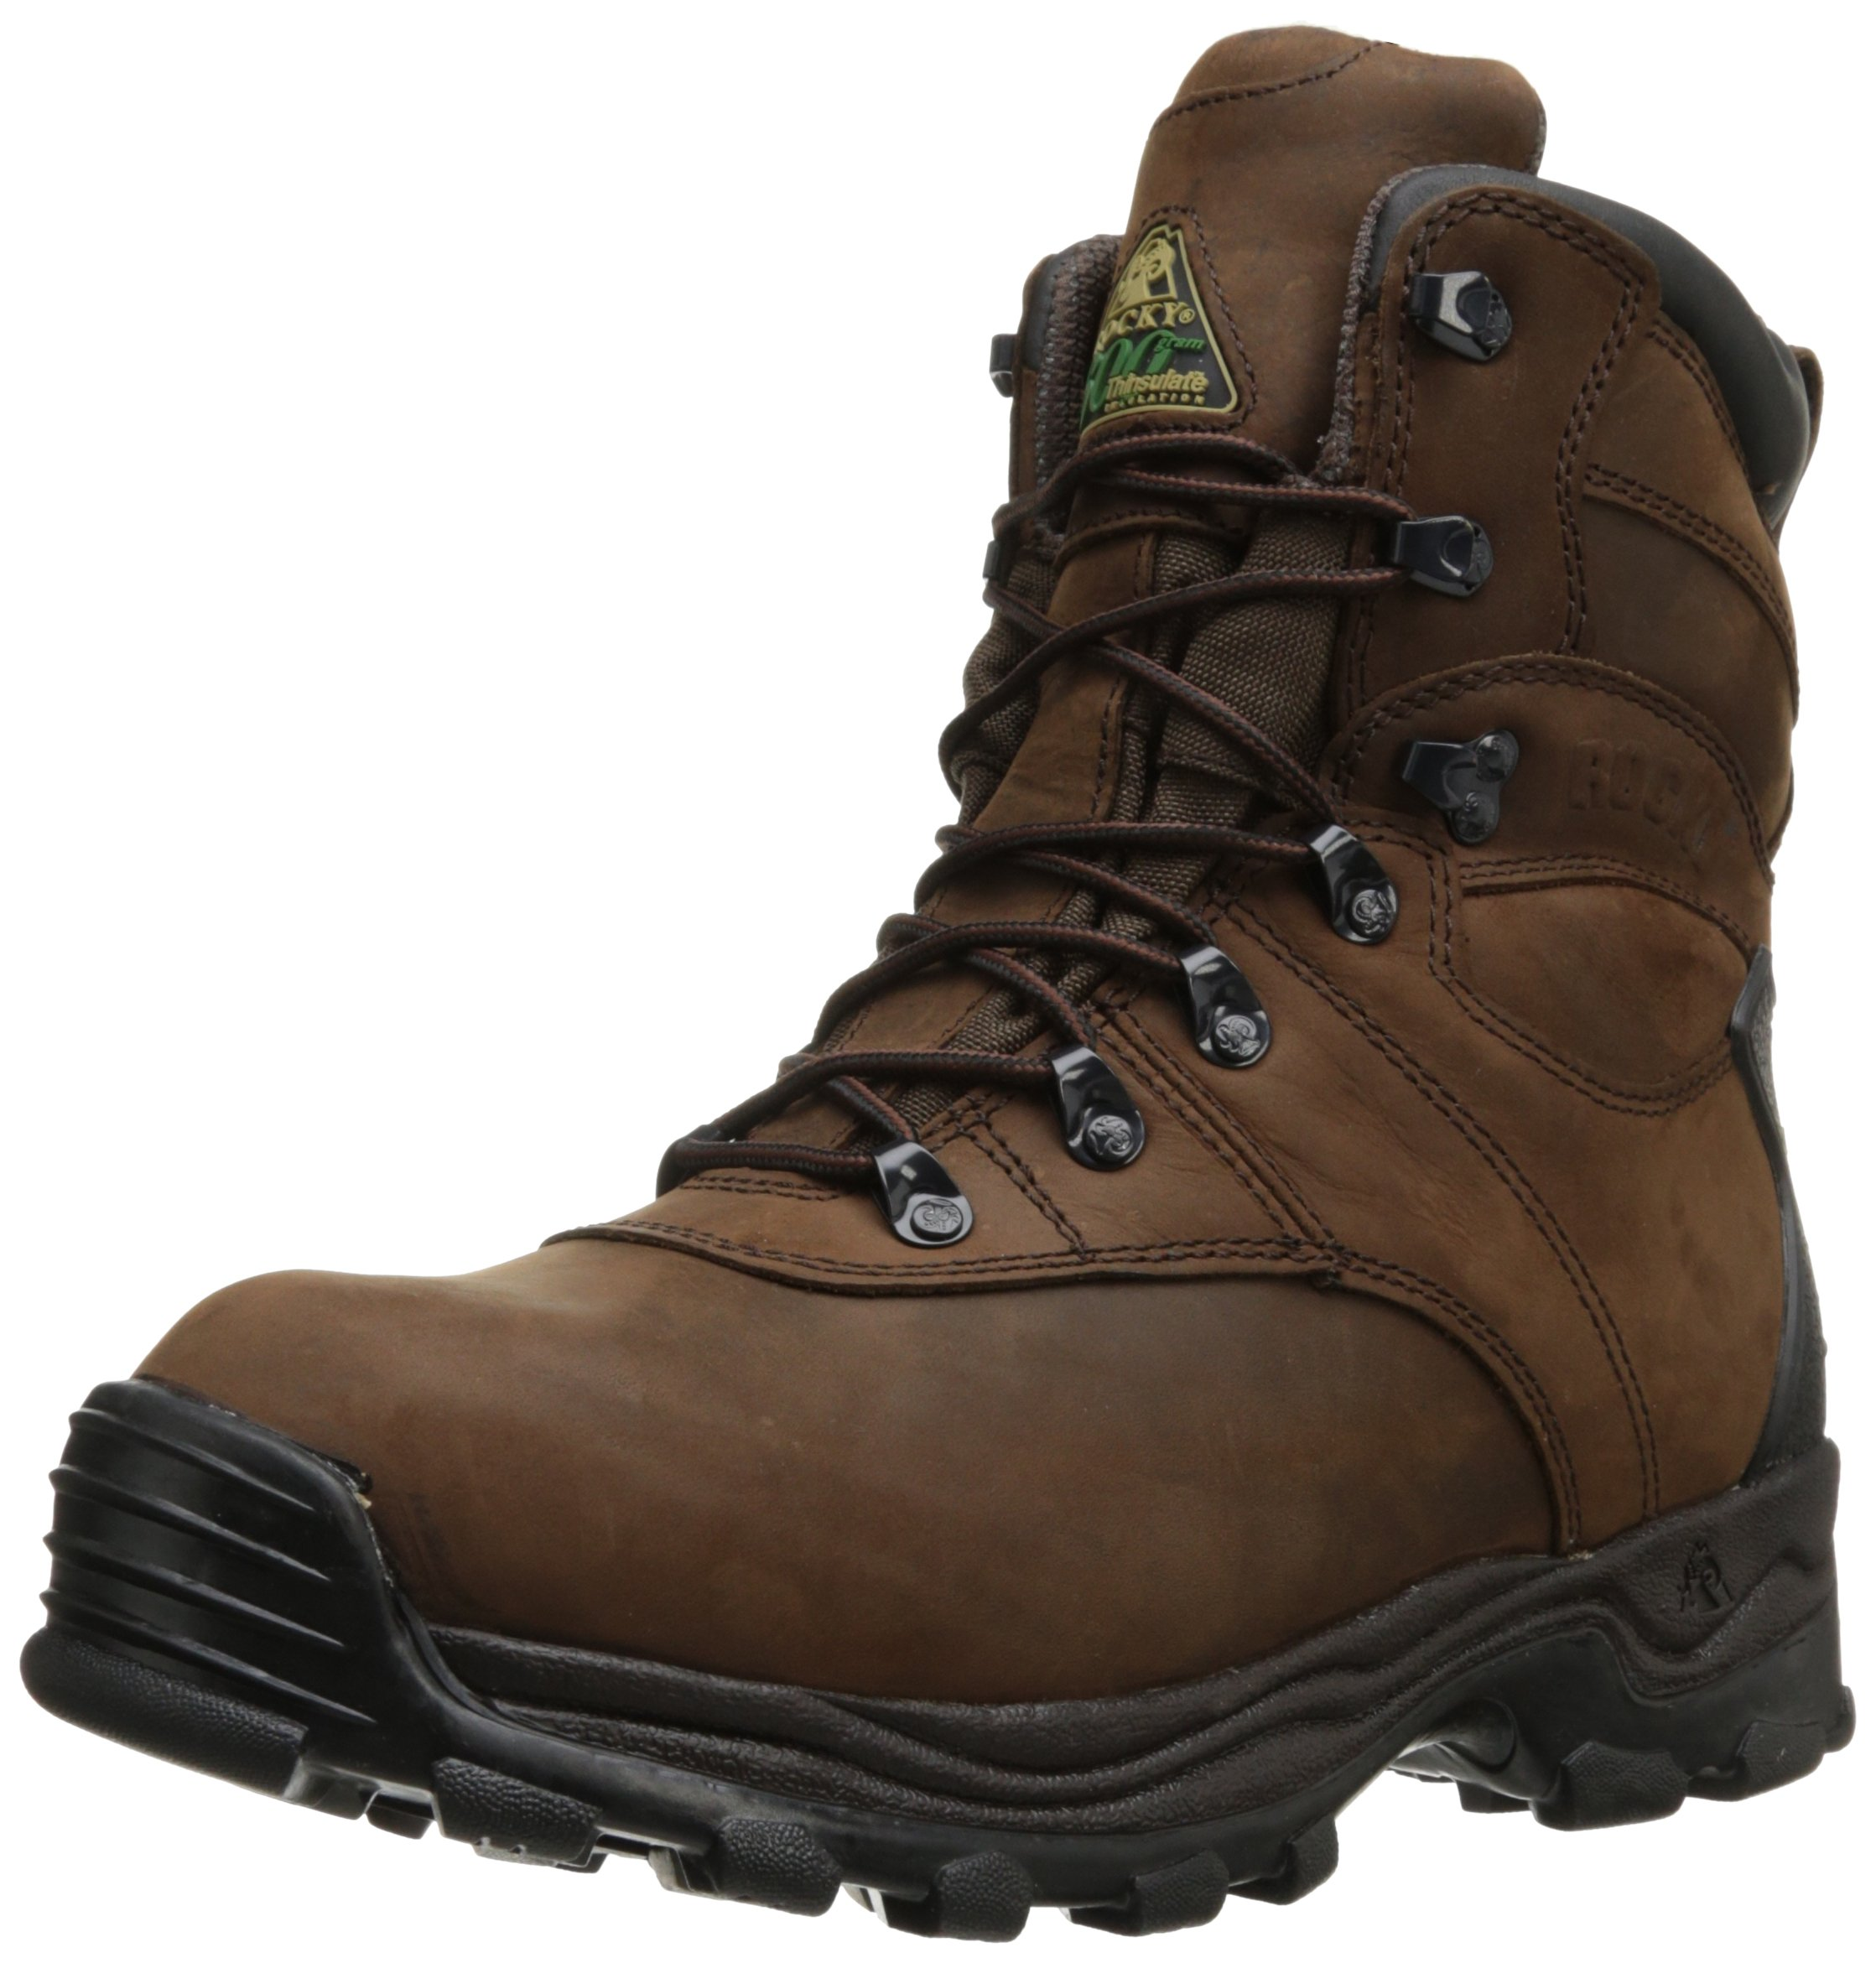 Rocky Men's Sport Utility Seven Inch Hunting Boot,Brown Leather,12 W US